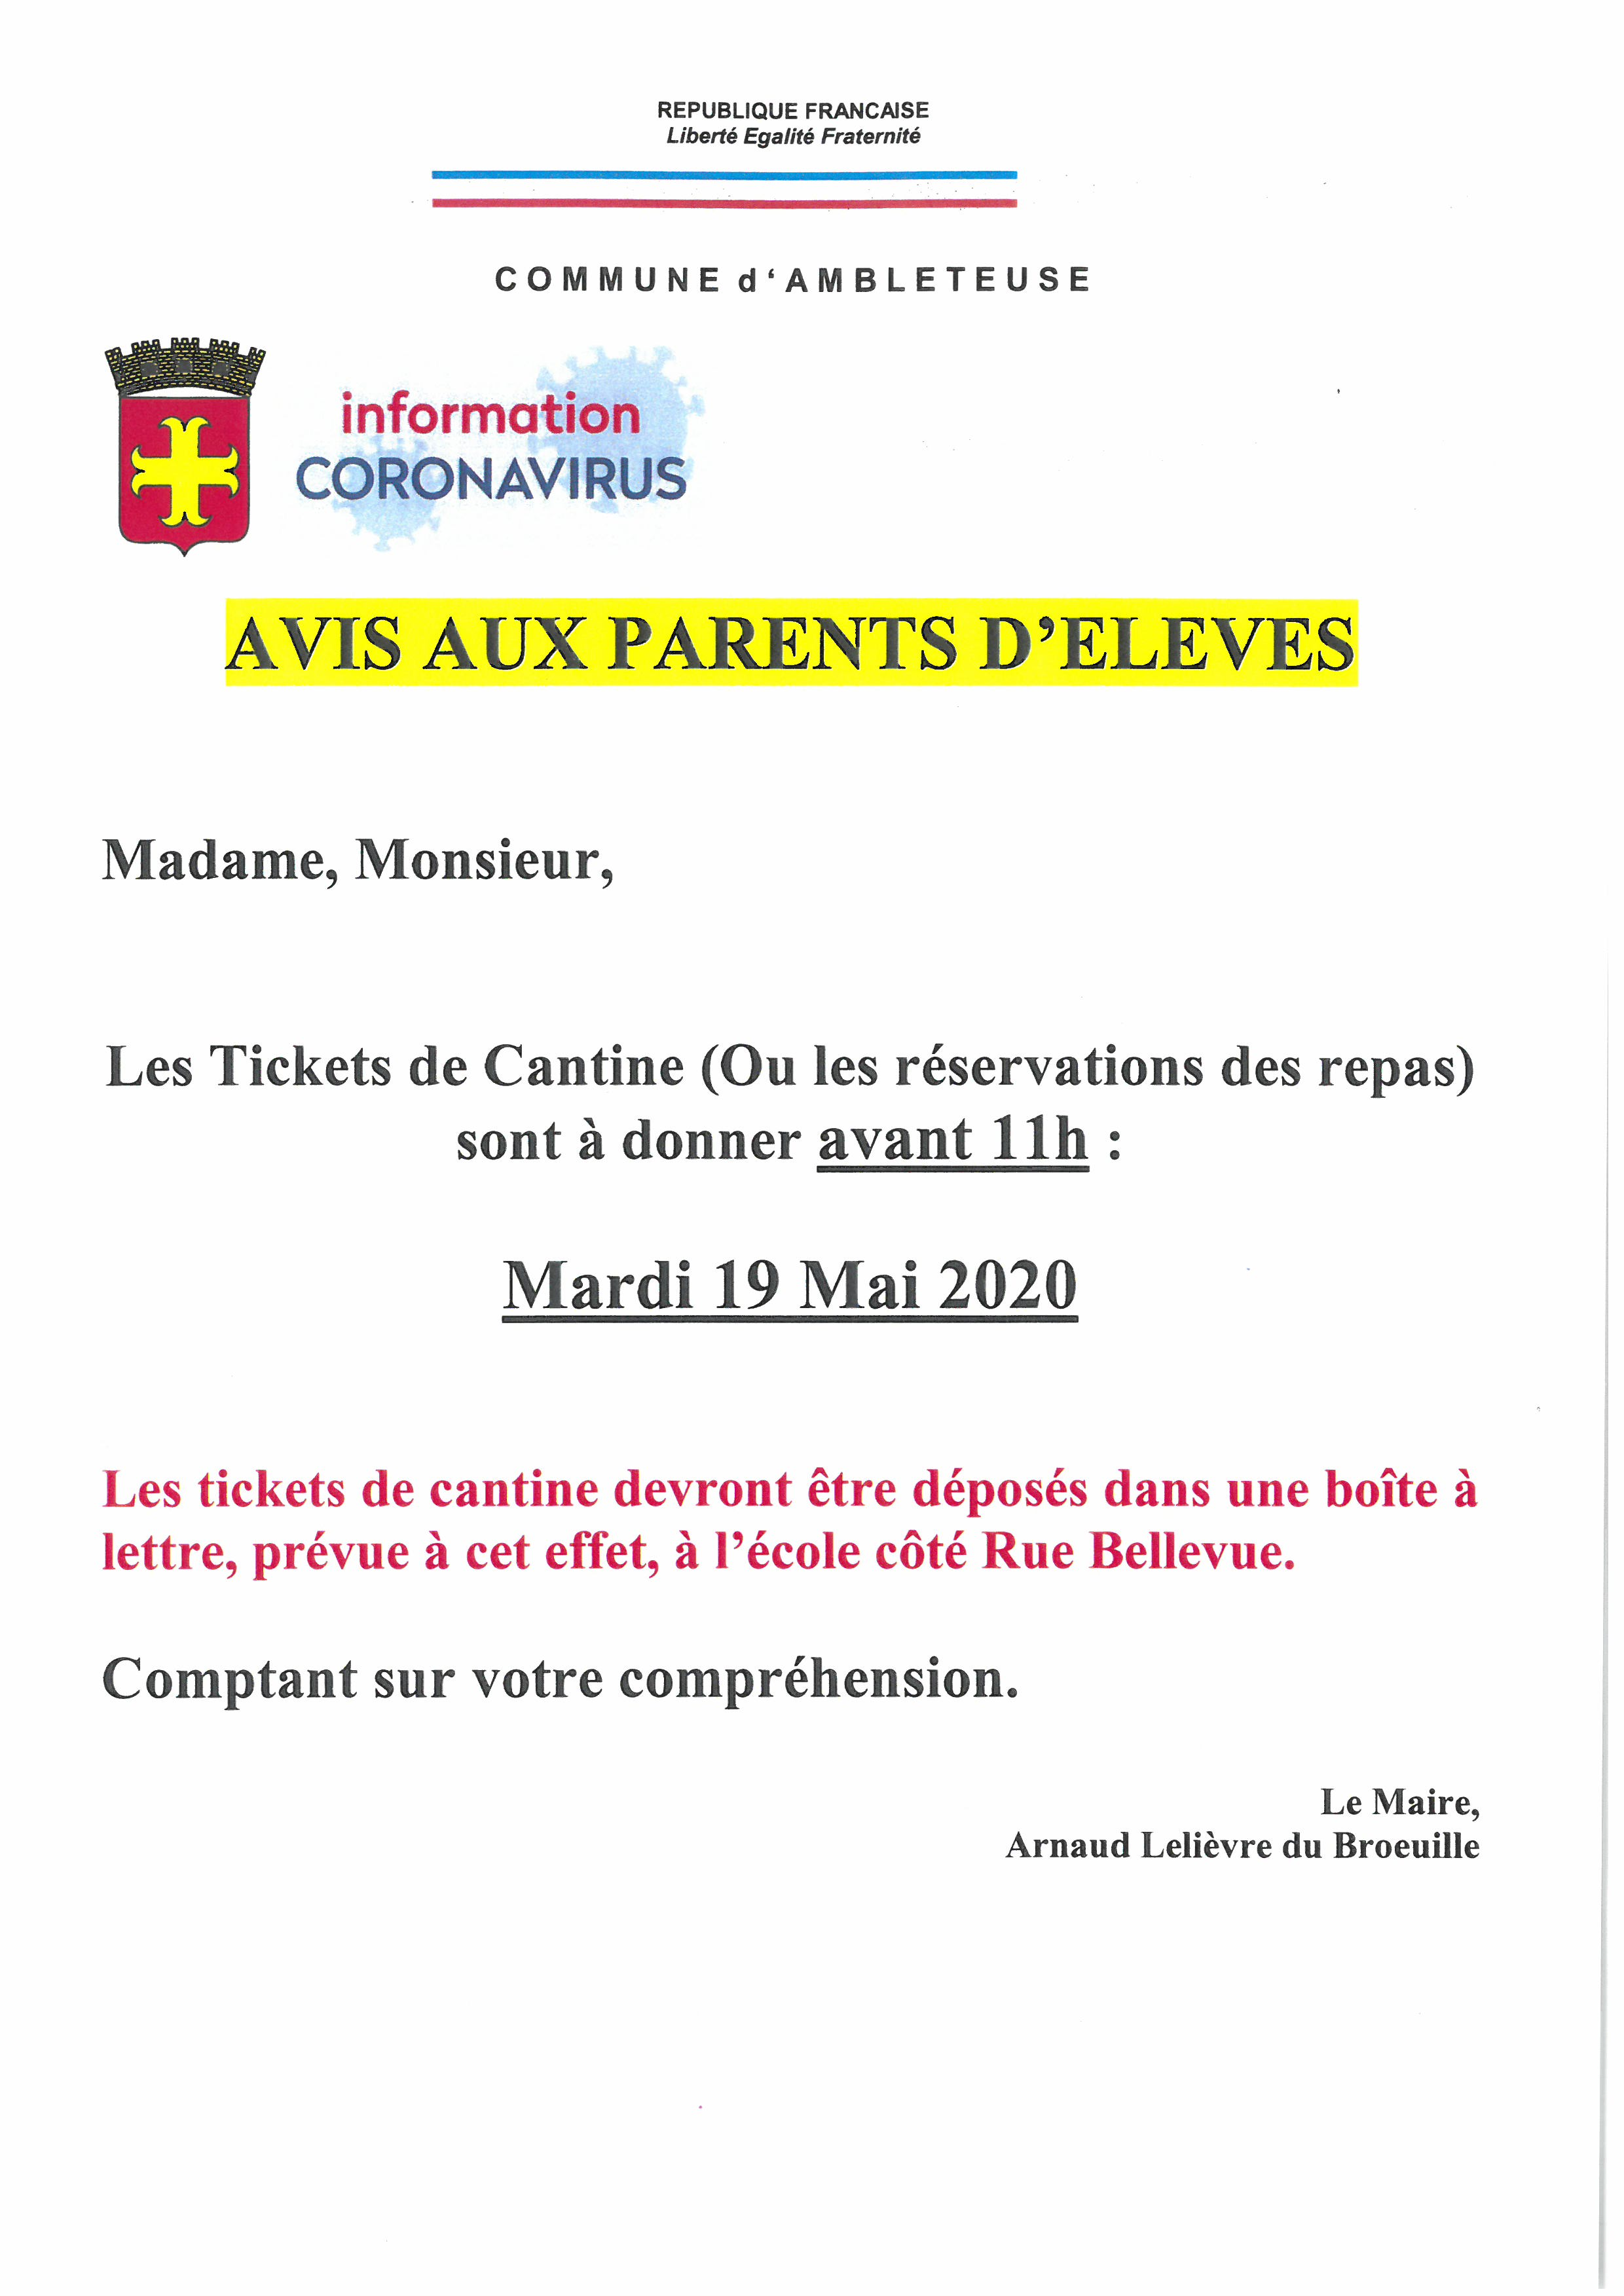 AVIS AUX PARENTS D'ELEVES.jpg